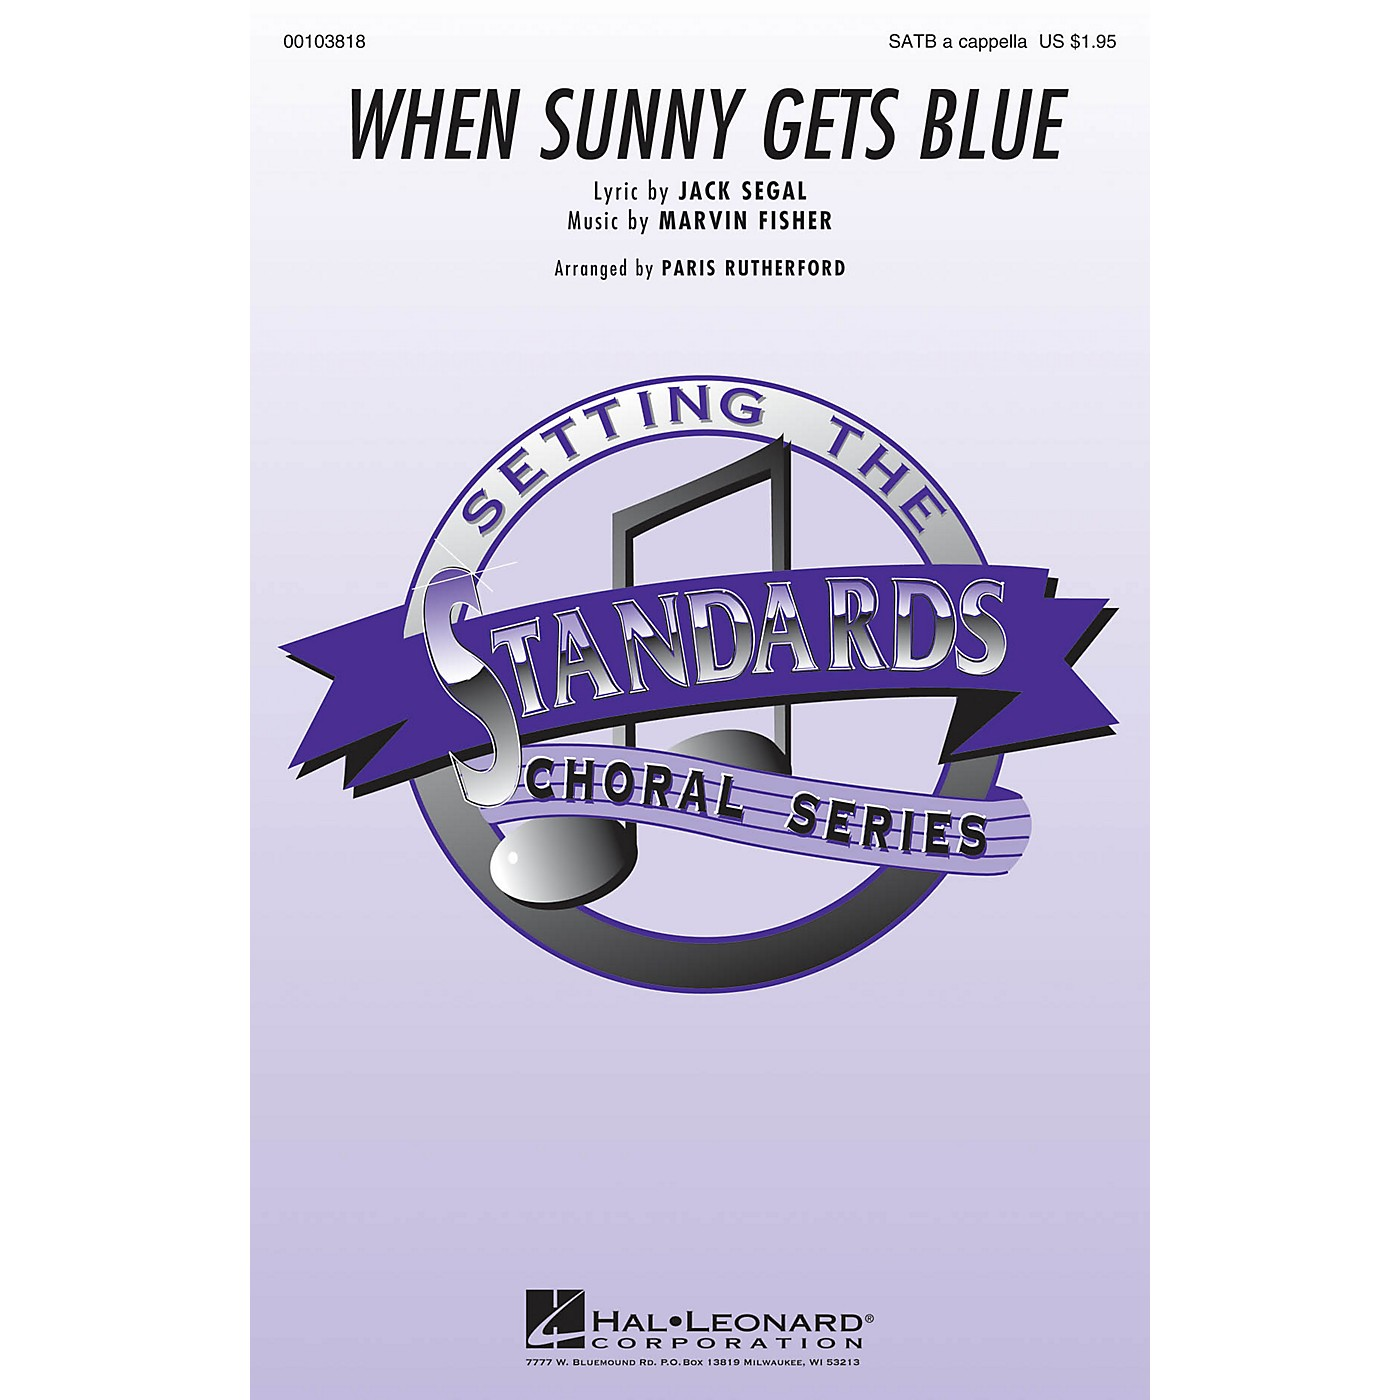 Hal Leonard When Sunny Gets Blue SATB a cappella arranged by Paris Rutherford thumbnail